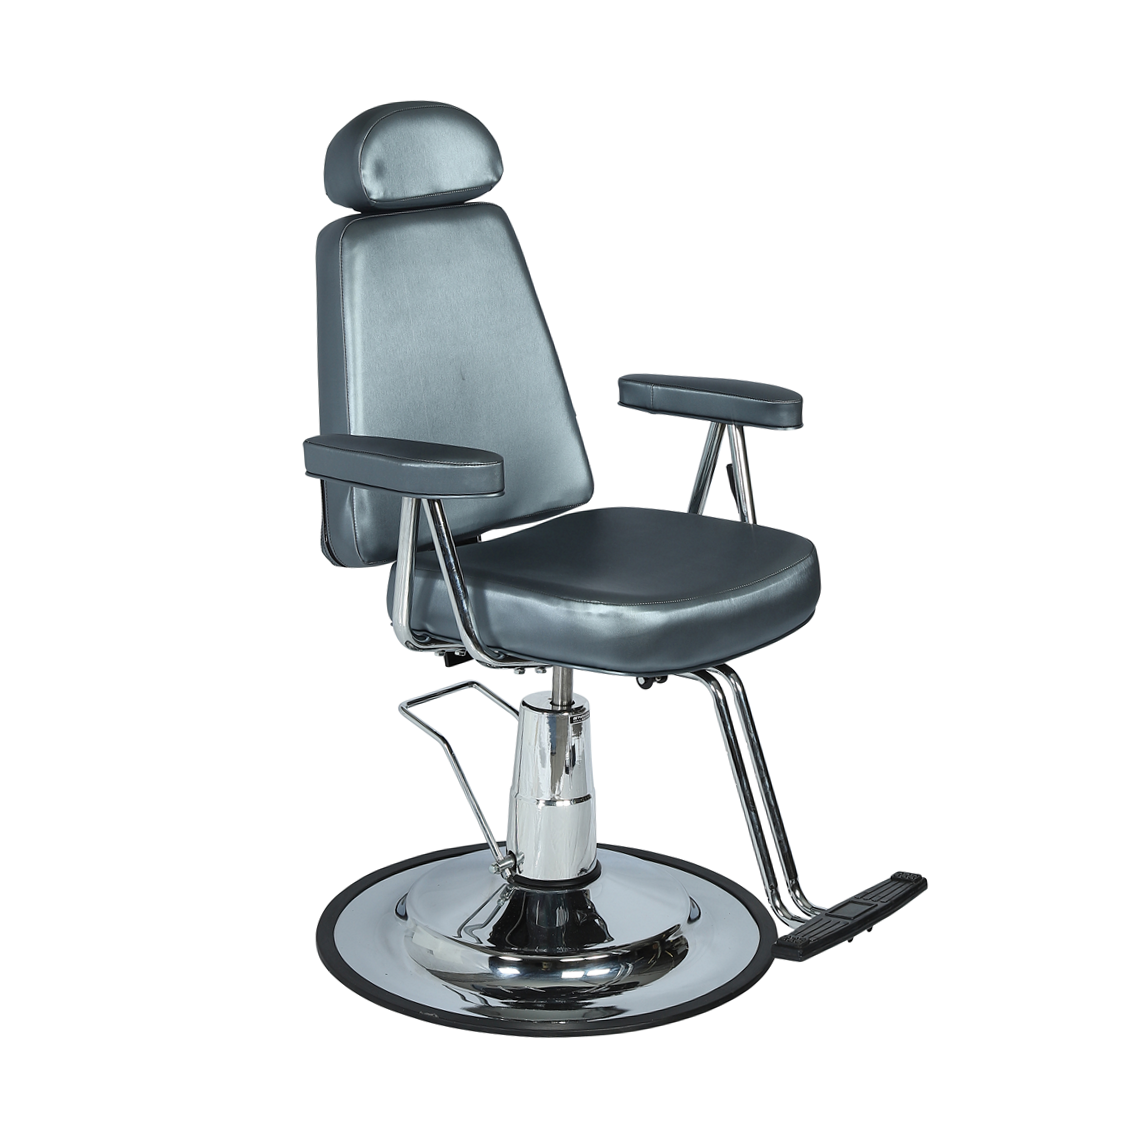 Kevyn Makeup Chair - Garfield Commercial Enterprises Salon Equipment Spa Furniture Barber Chair Luxury